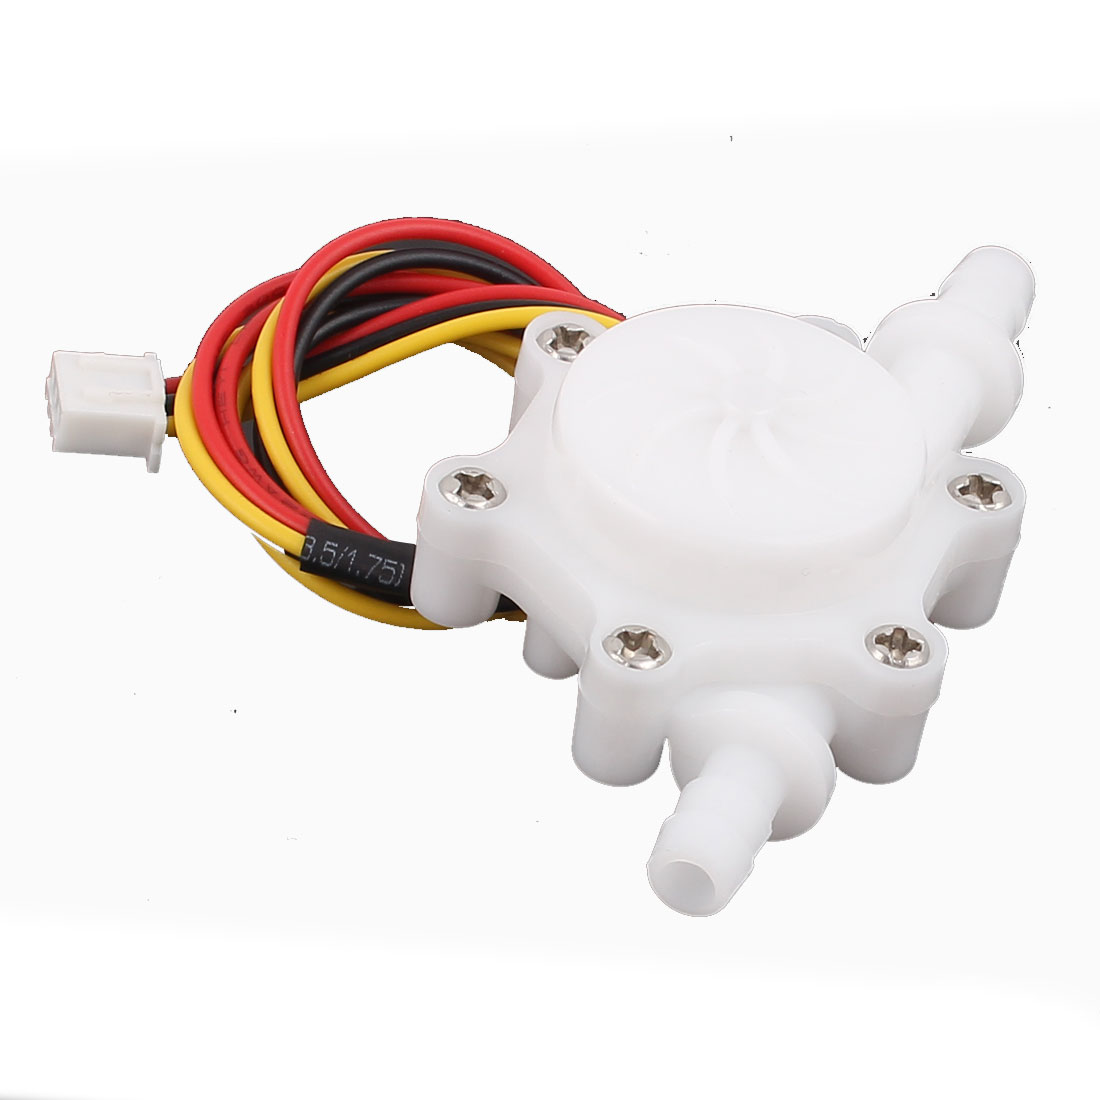 0.15-1.5L/min 6mm Outlet Outer Dia Water Flow Counter Sensor SEN-HZ06C